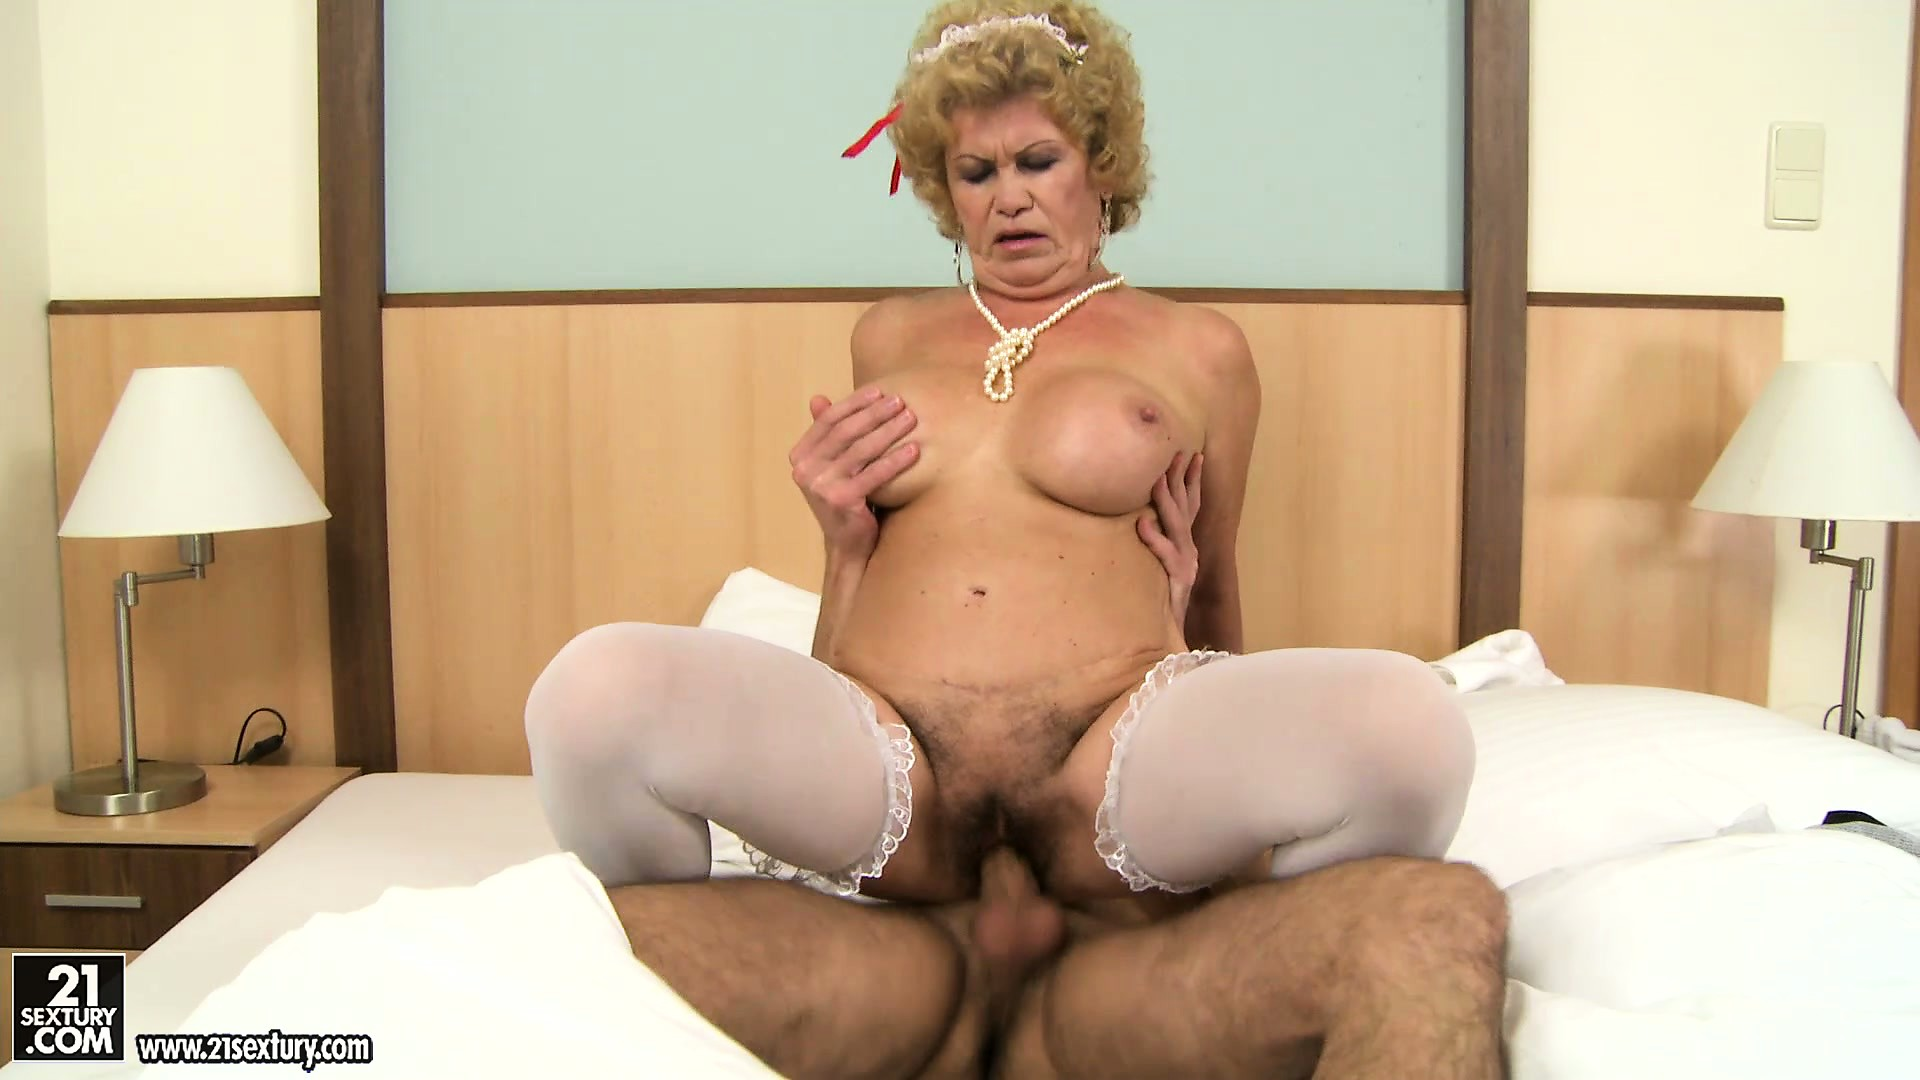 Porno Video of The Hairy Goddess Is A Naughty Blonde Granny With A Mountain Of Fur On Her Twat